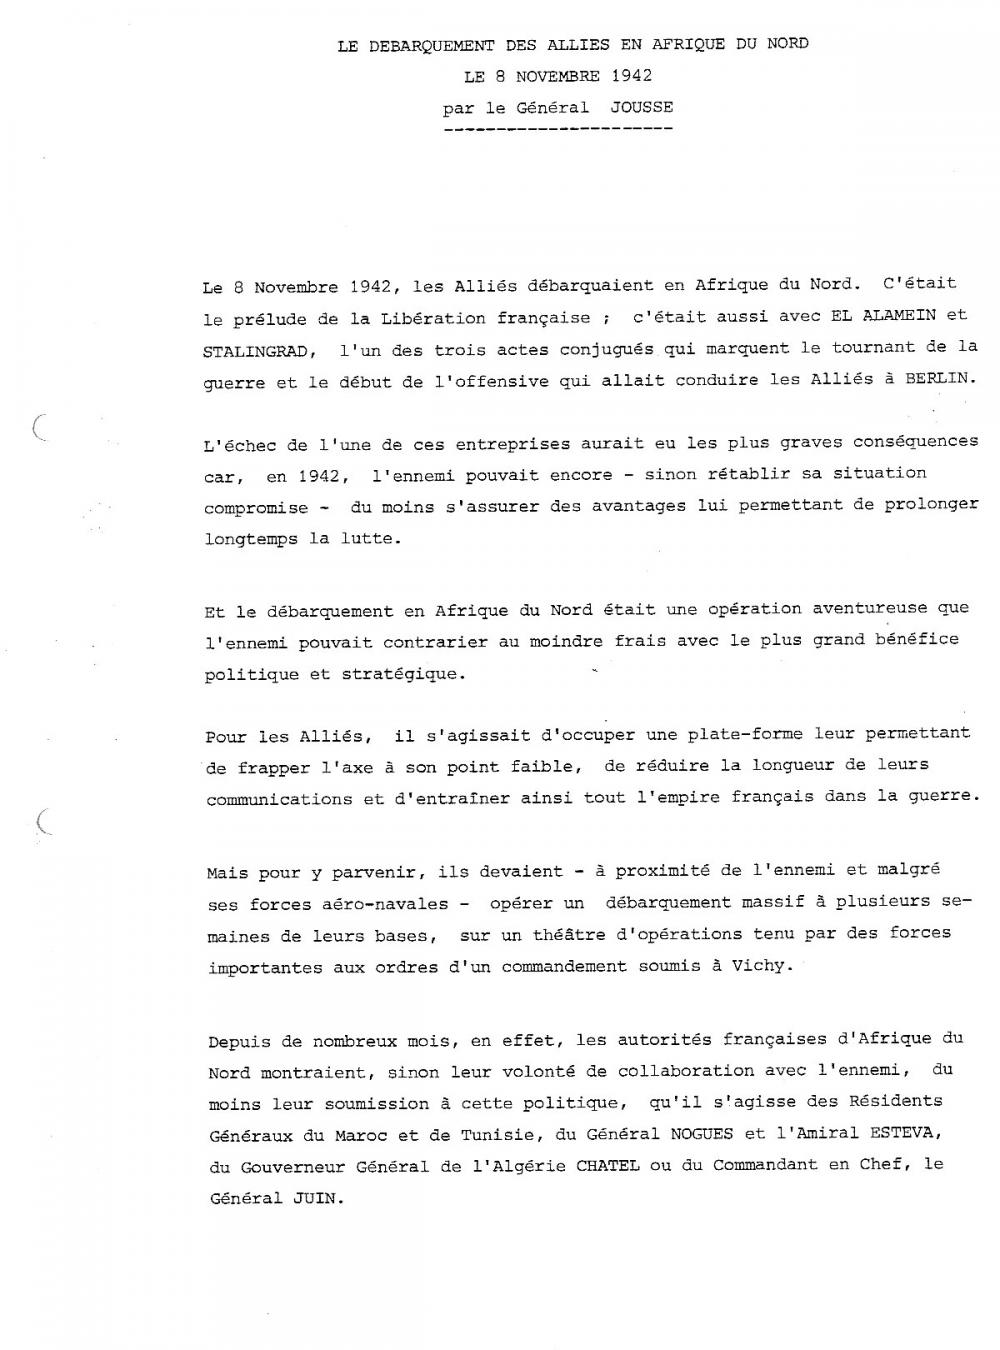 General jousse page 1